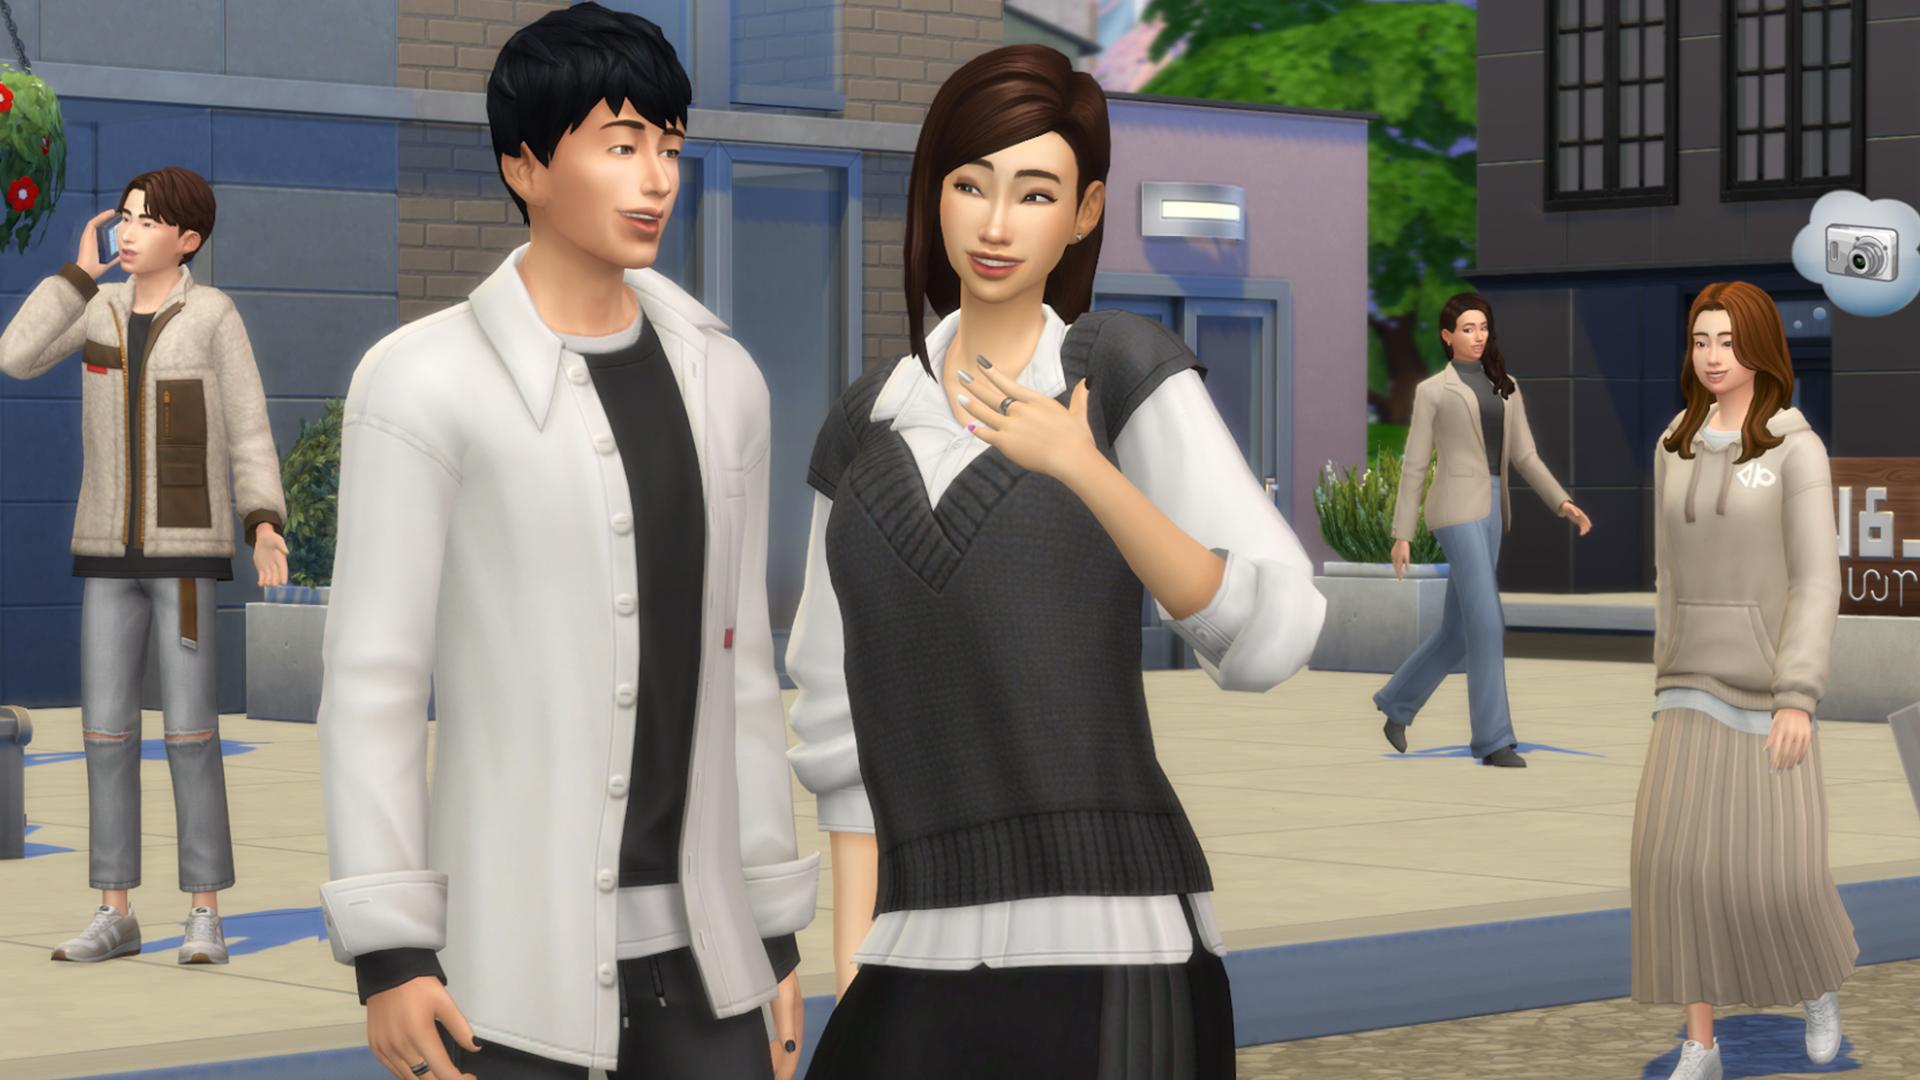 Sims dressed in South Korean style clothes